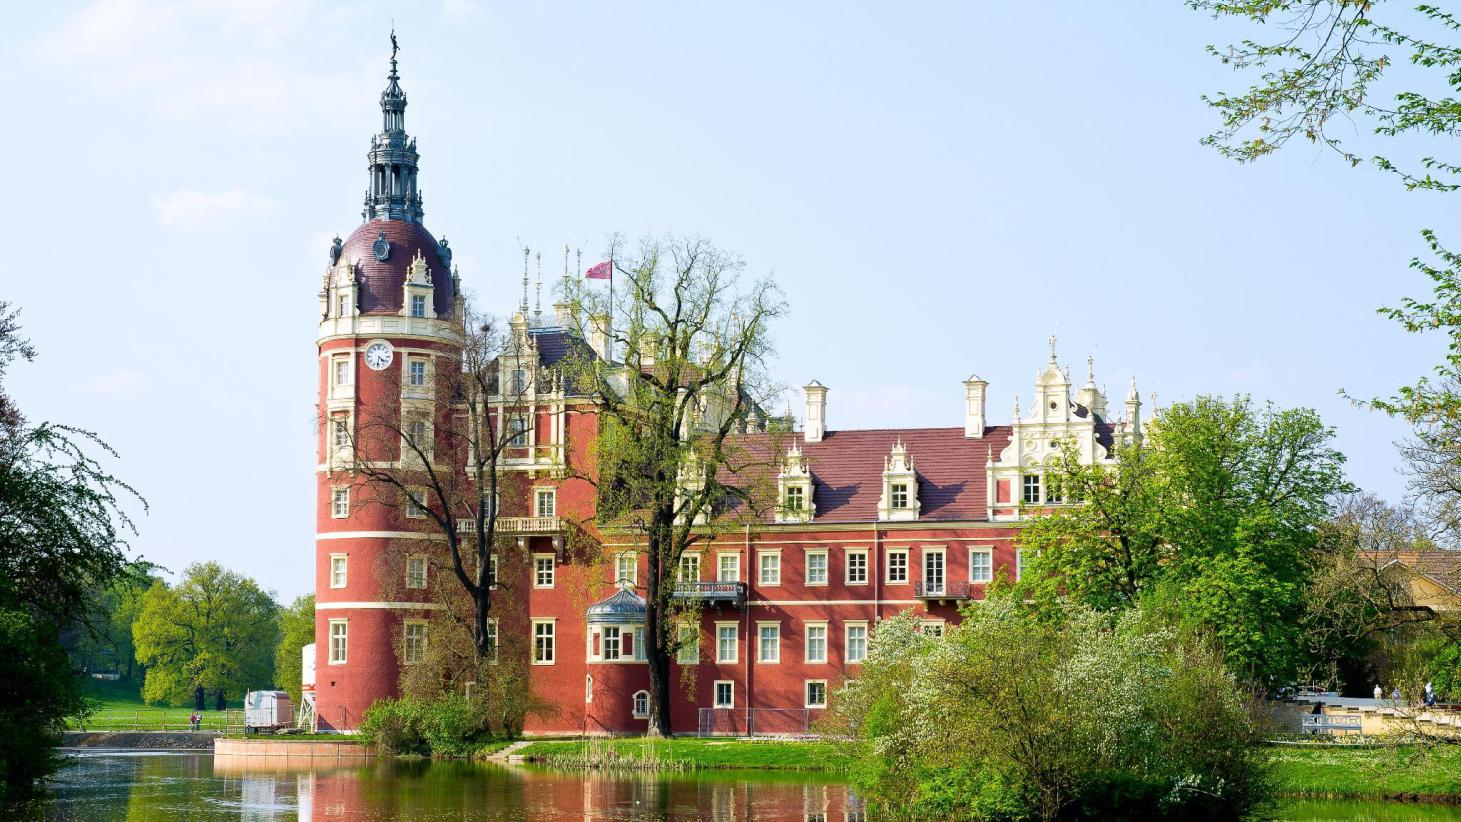 30 Best Bad Muskau Hotels - Free Cancellation, 2021 Price Lists & Reviews of the Best Hotels in Bad Muskau, Germany